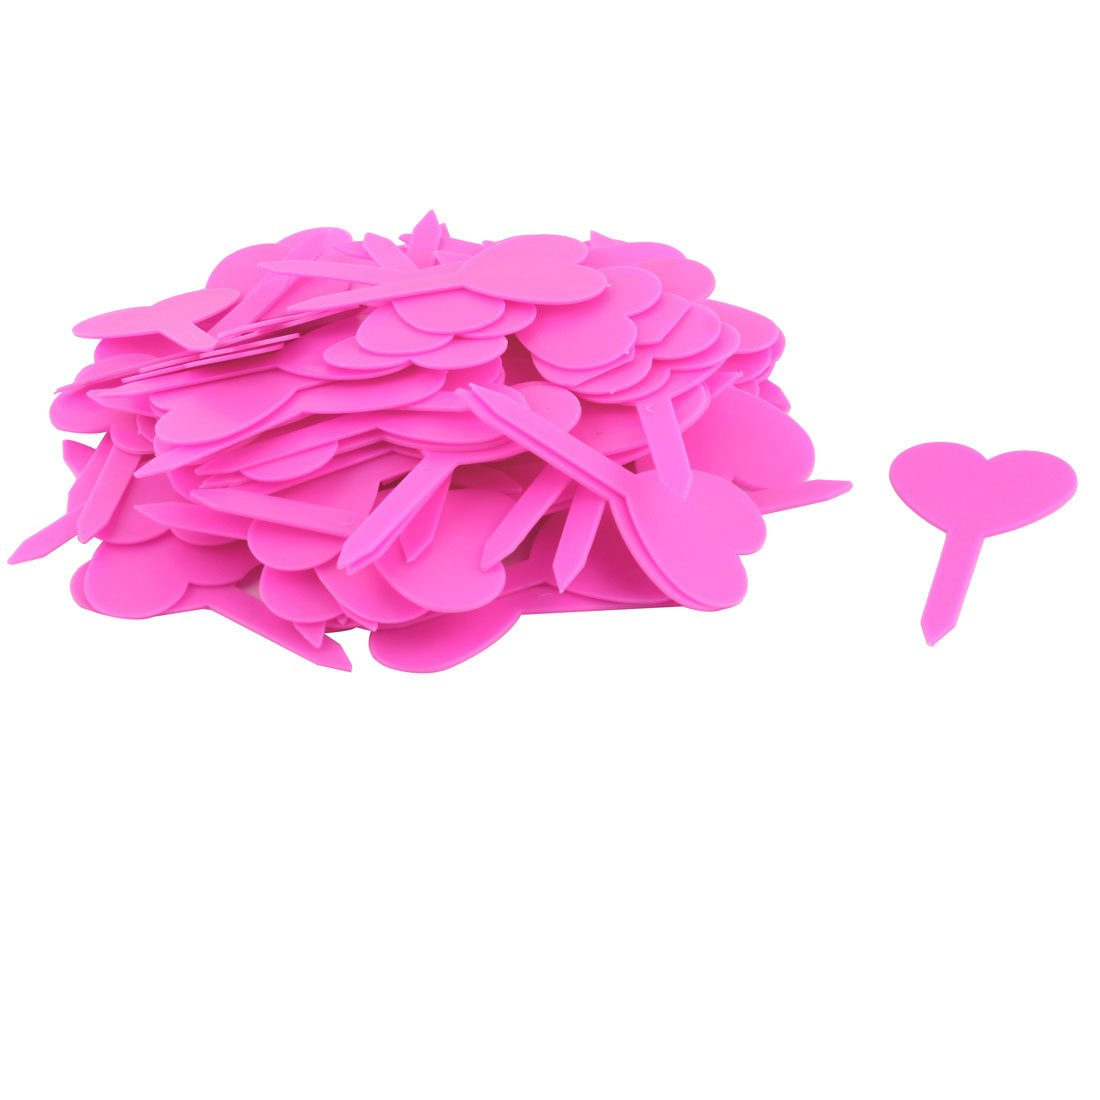 uxcell Plastic Household Garden Heart Shaped Plant Seed Tag Label Marker Stick 100pcs Pink by uxcell (Image #1)